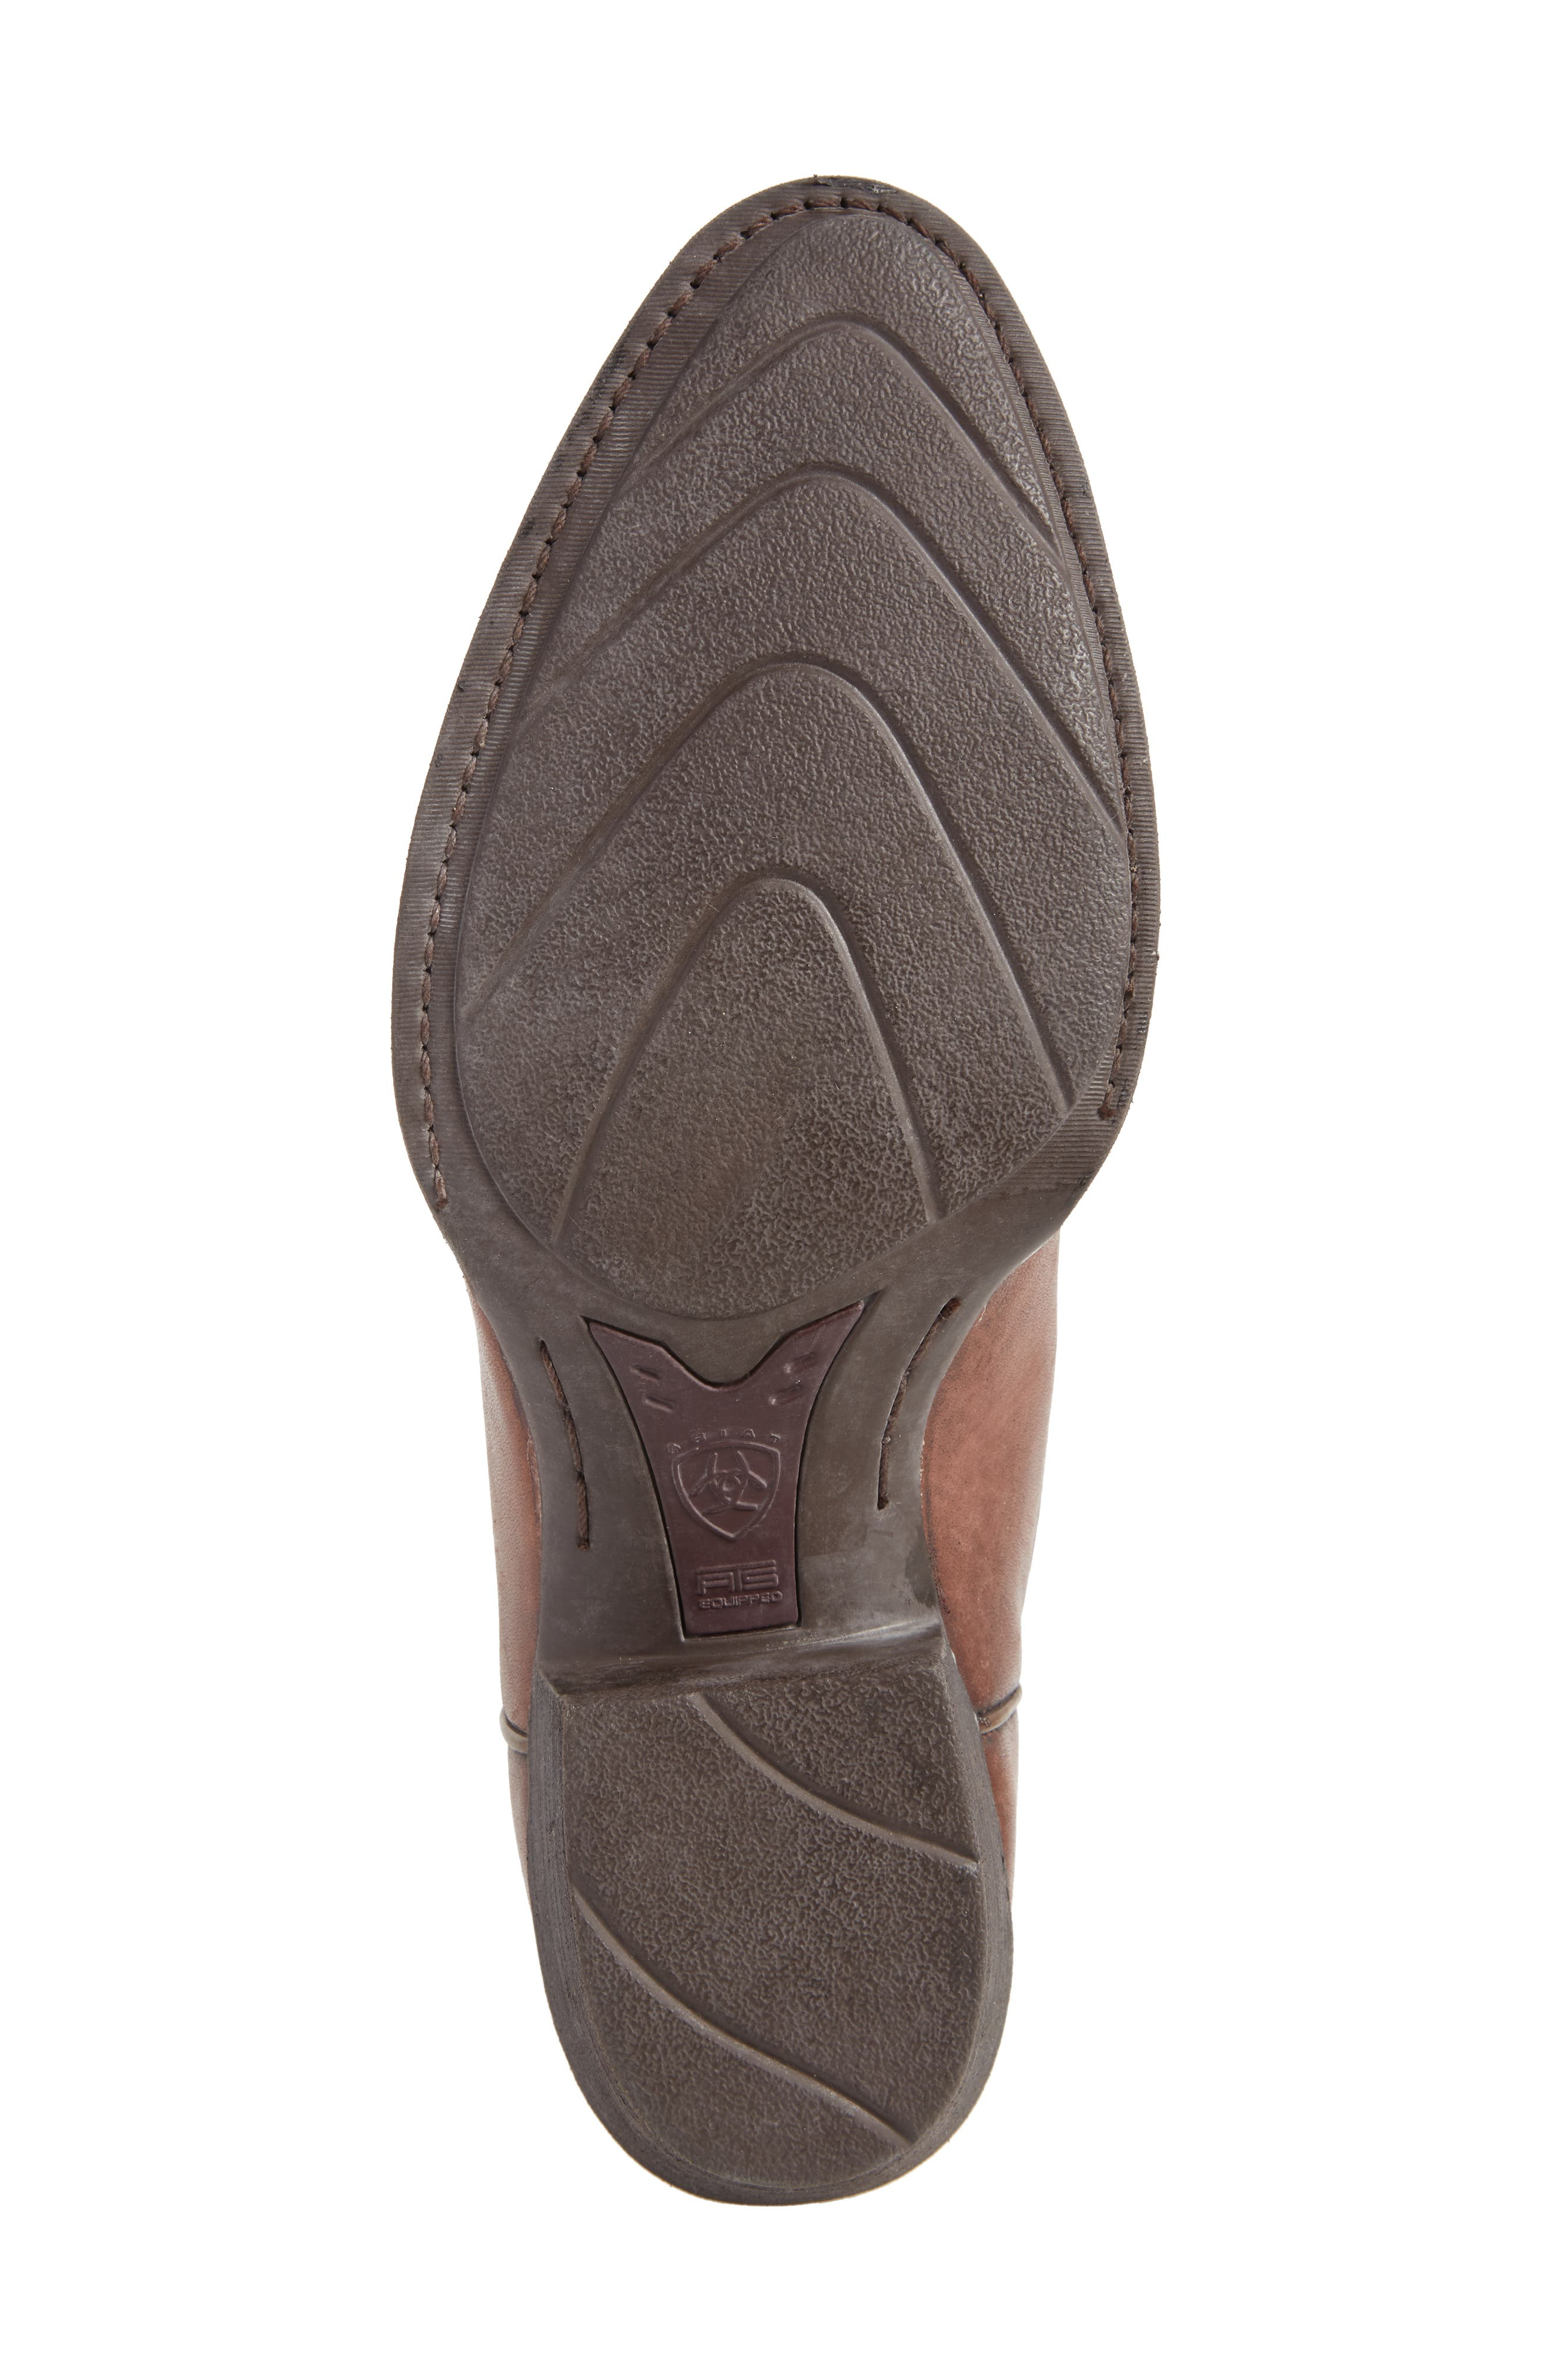 Heritage Calhoun Western R-Toe Boot,                             Alternate thumbnail 4, color,                             Natural Brown Leather